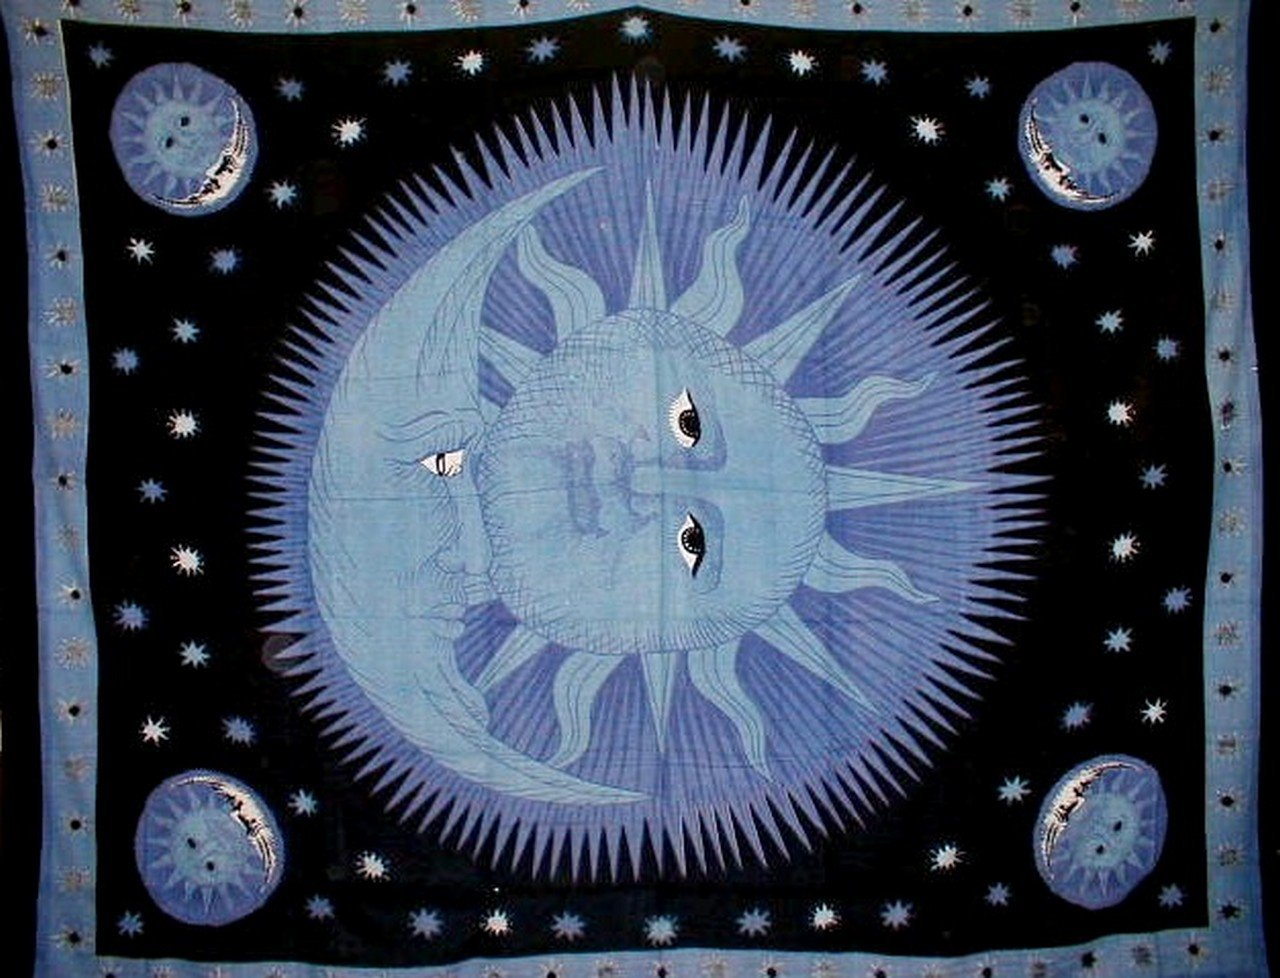 Celestial Tapestry Cotton Bedspread 108'' x 88'' Full-Queen Blue